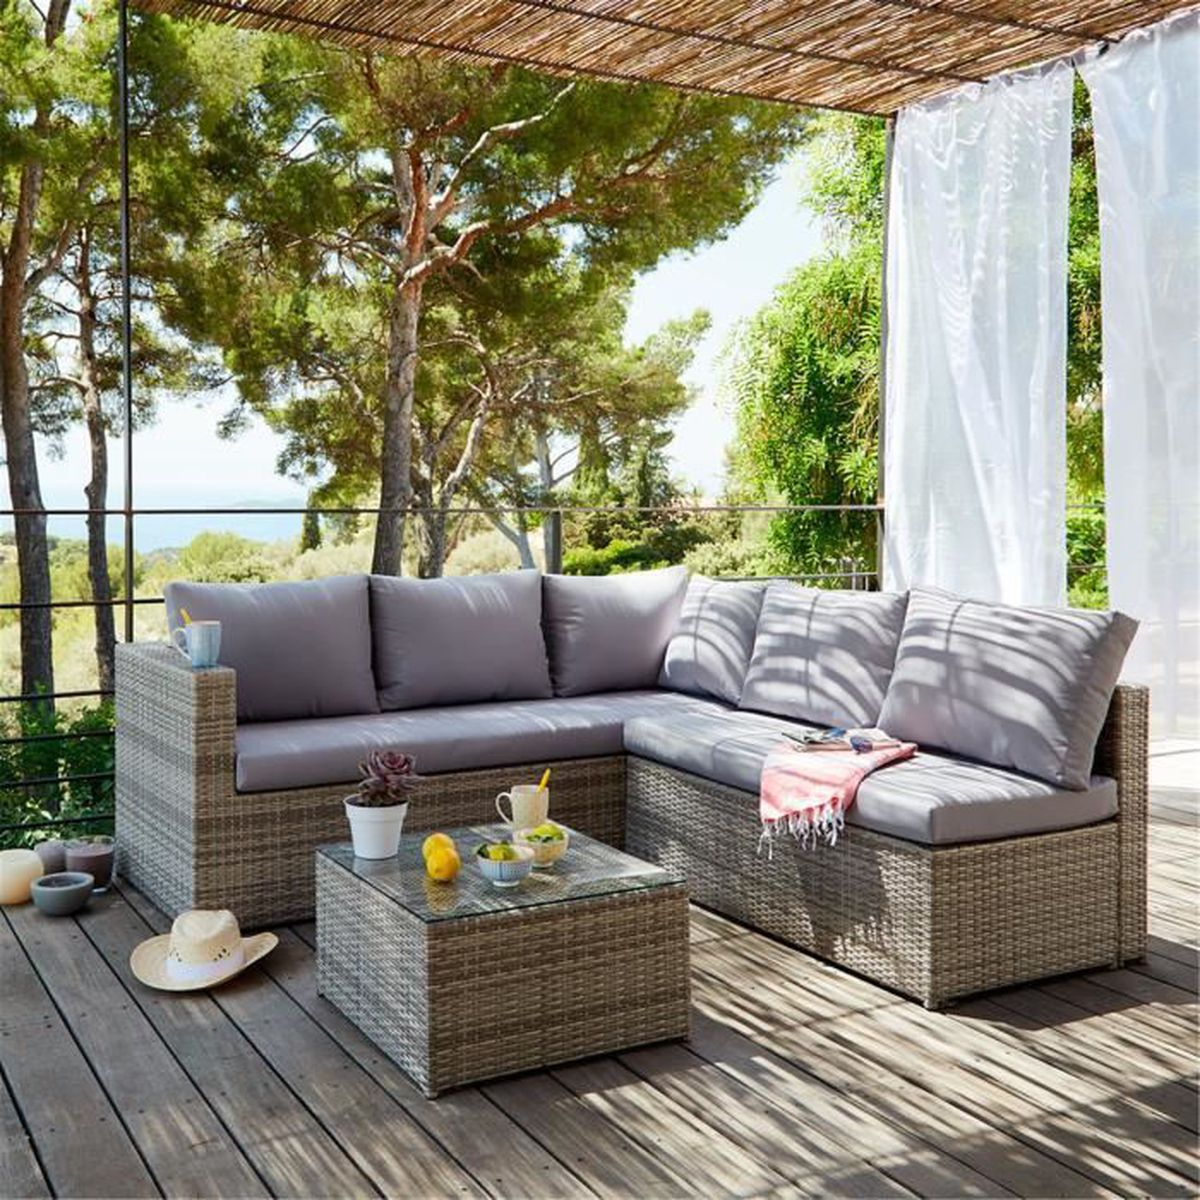 beautiful salon de jardin chloe design photos awesome interior home satellite. Black Bedroom Furniture Sets. Home Design Ideas